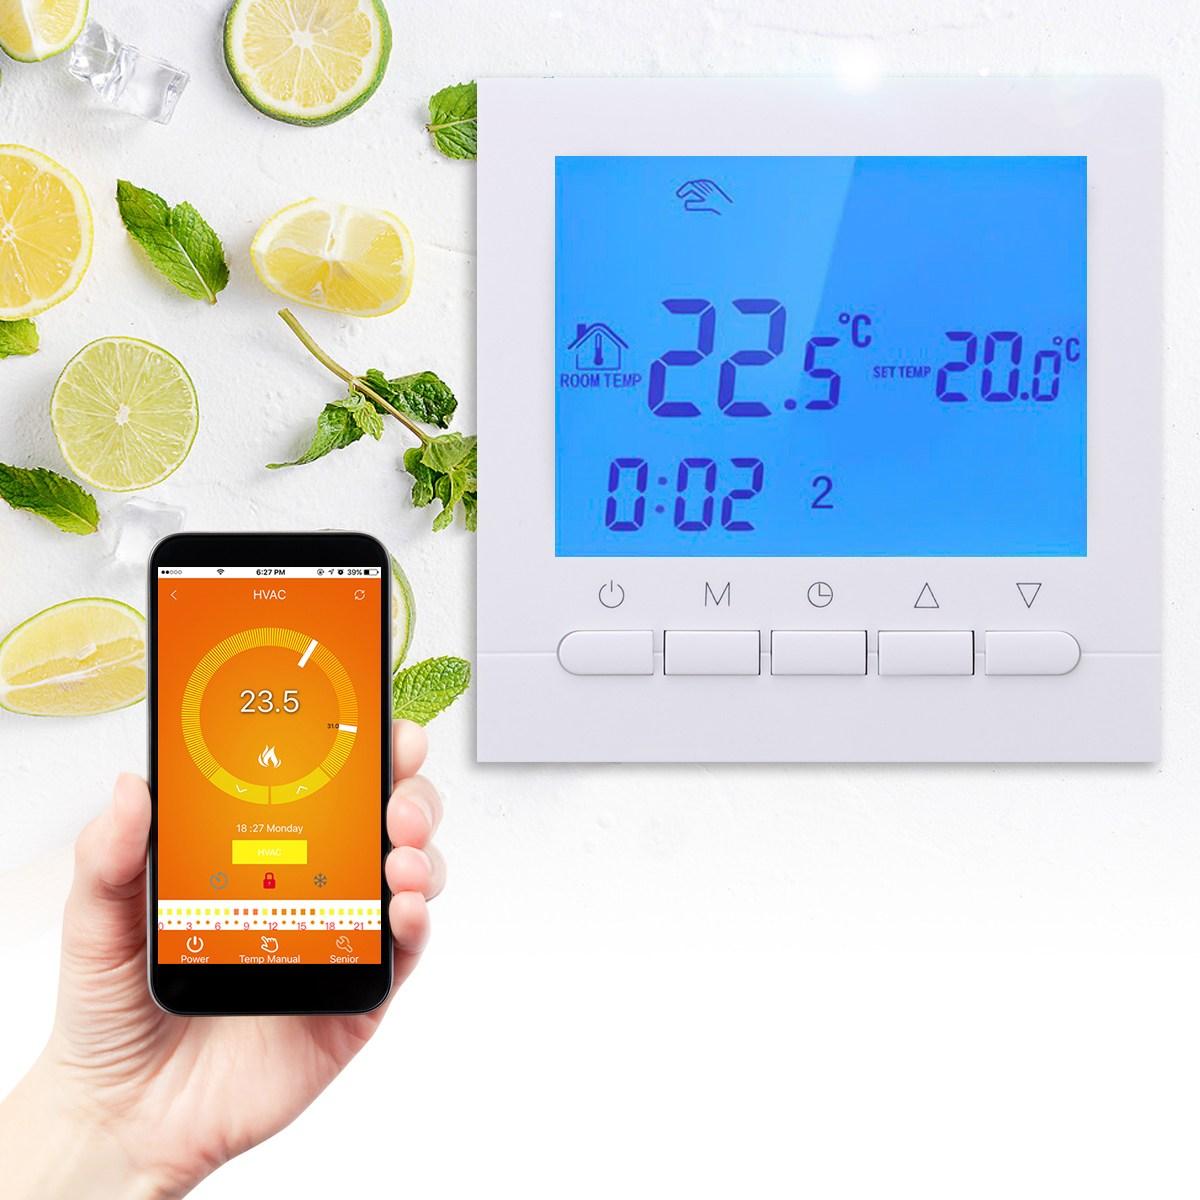 WIFI Control Thermoregulator Programmable Temperature Controller Wireless Thermostat Underfloor Electric Heating App Control taie thermostat fy400 temperature control table fy400 301000